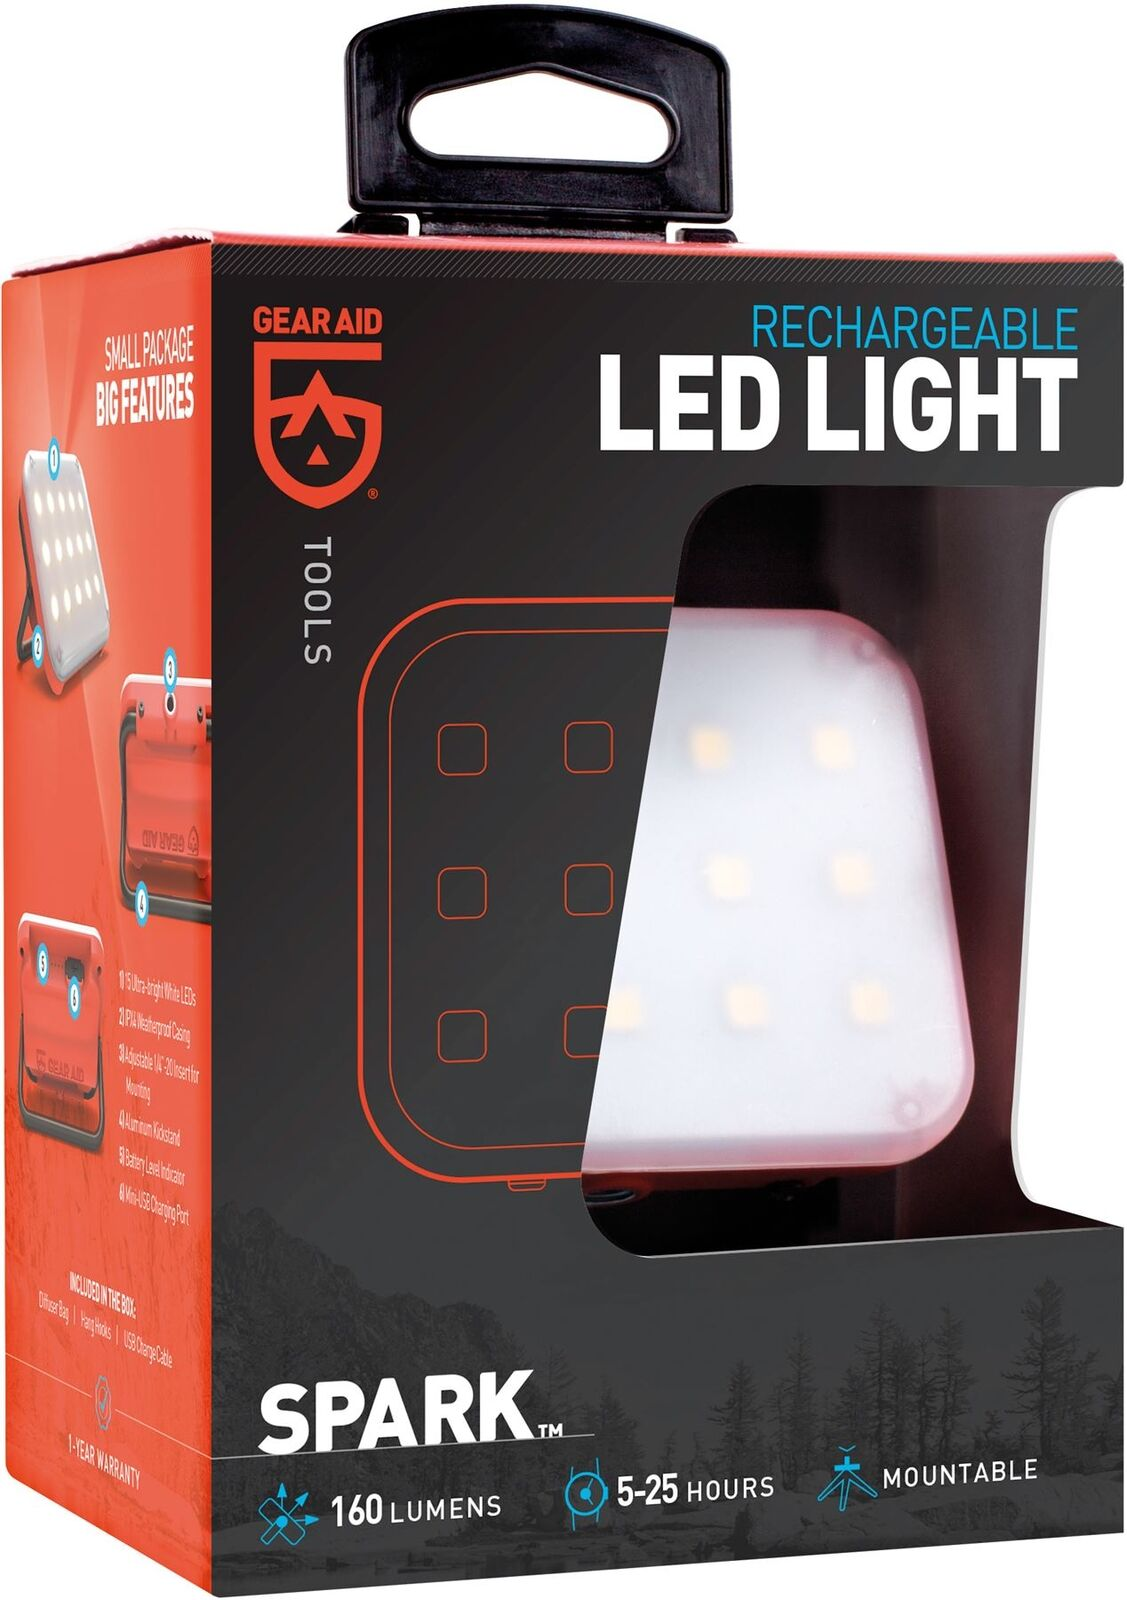 McNett Gear Aid SPARK   Rechargeable LED Light    Leeda